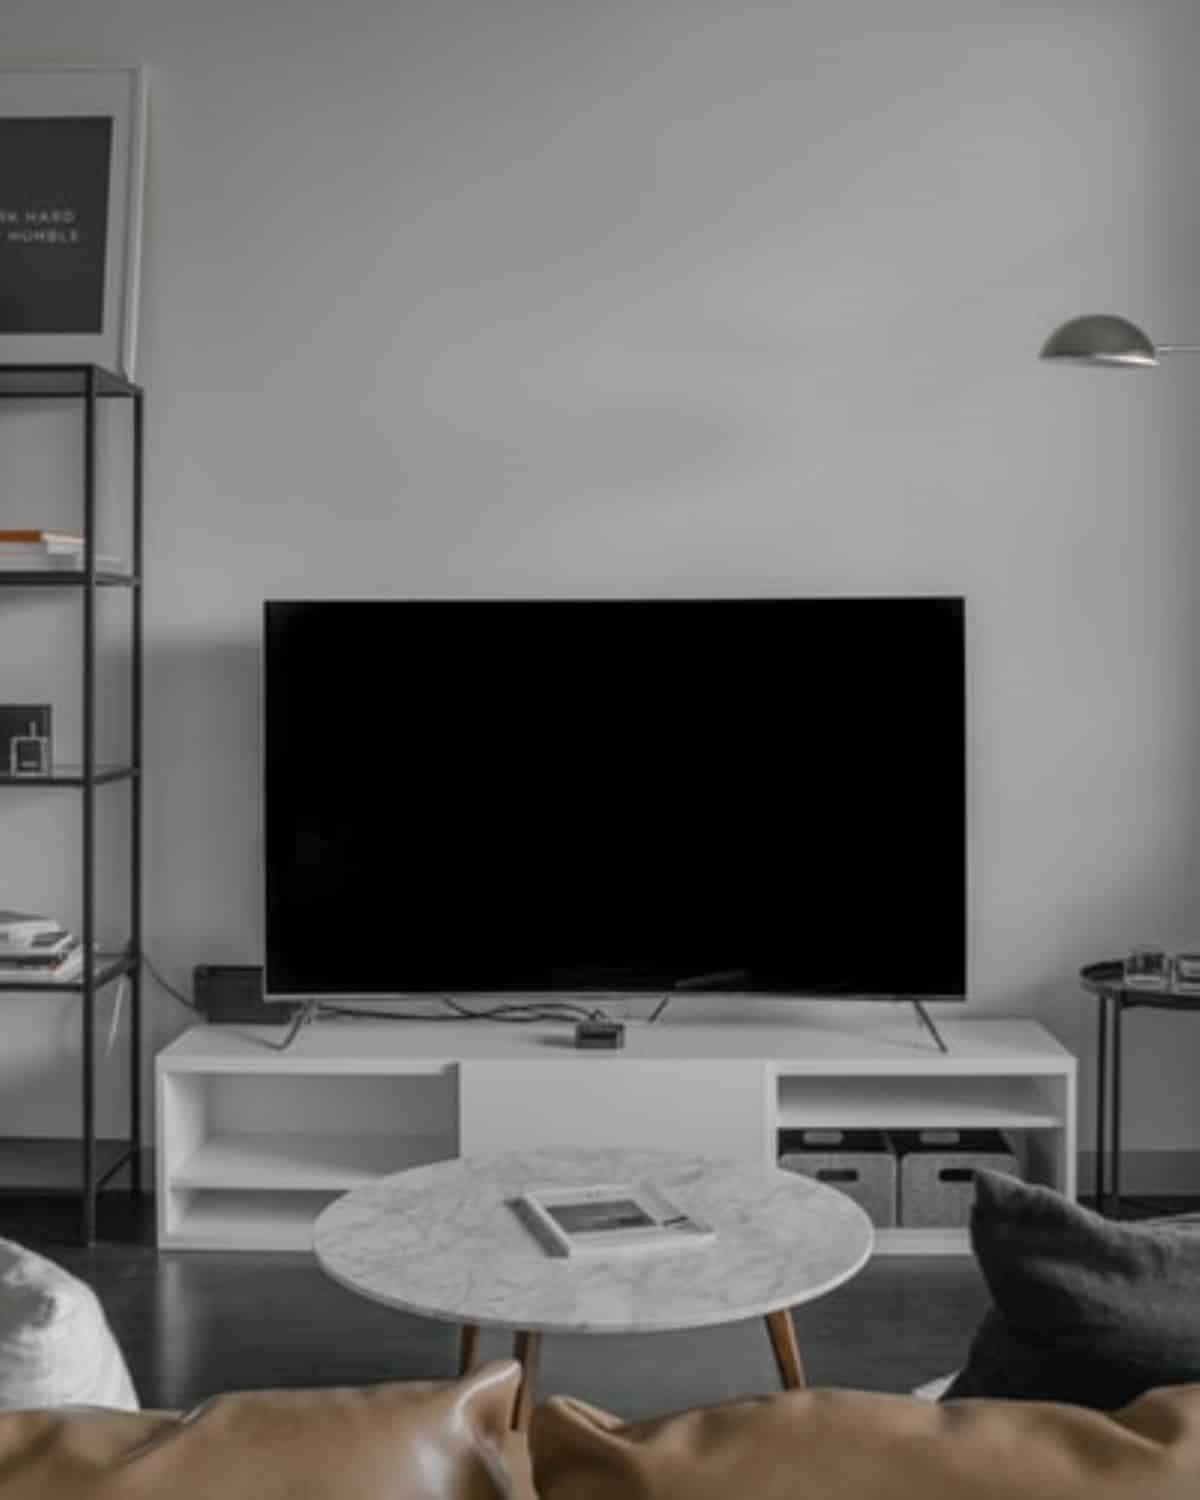 how to make a home theater in an apartment